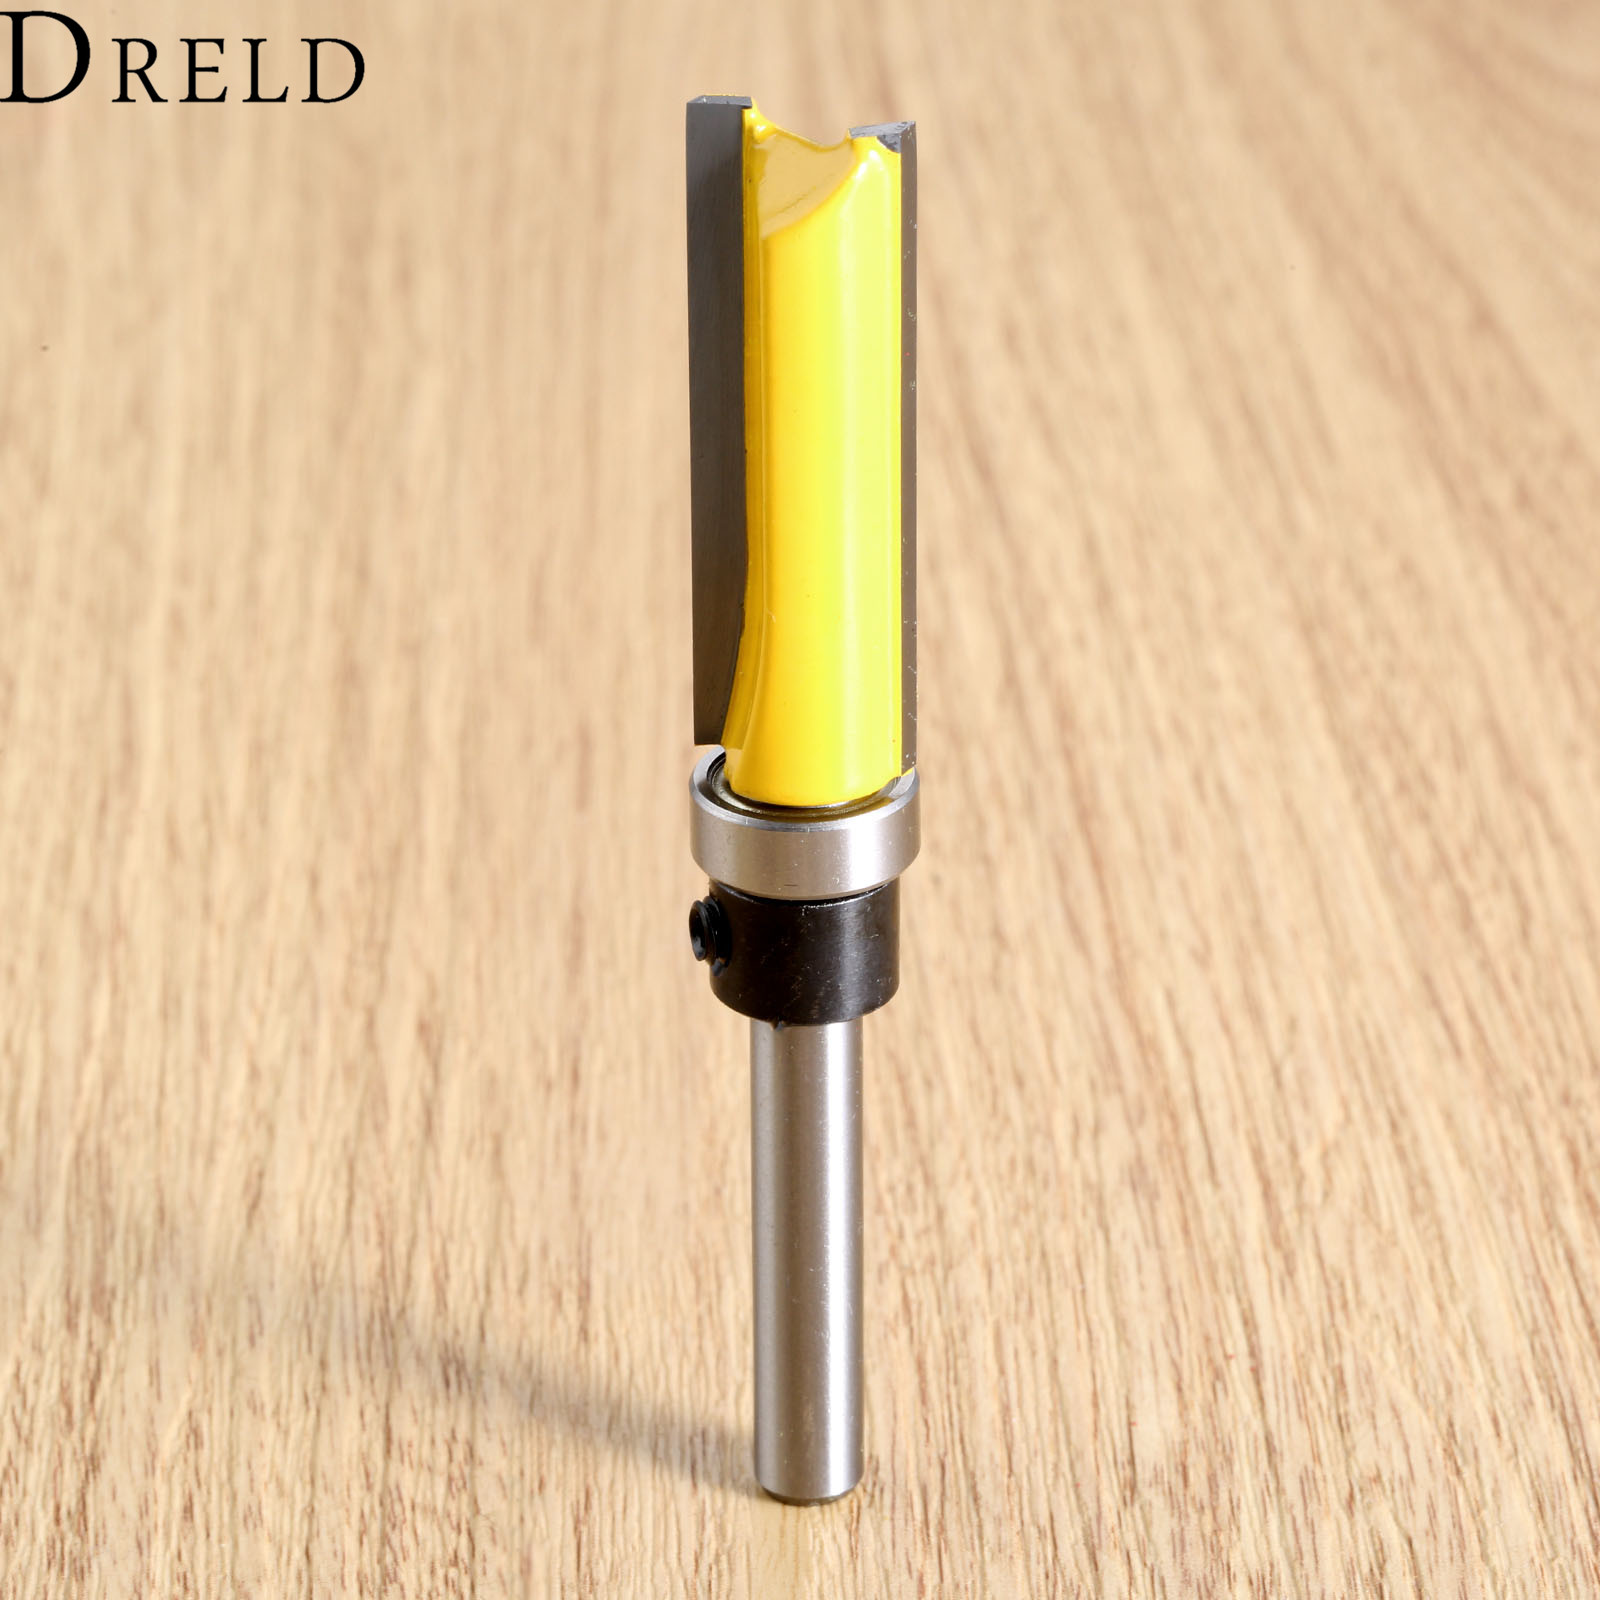 DRELD 1pcs 1/4 Shank Flush Trim Router Bit Bearing Woodworking Milling Cutter Wood Drilling Carpenter Tools Carbide 1/4*1/2*38 16pcs 14 25mm carbide milling cutter router bit buddha ball woodworking tools wooden beads ball blade drills bit molding tool